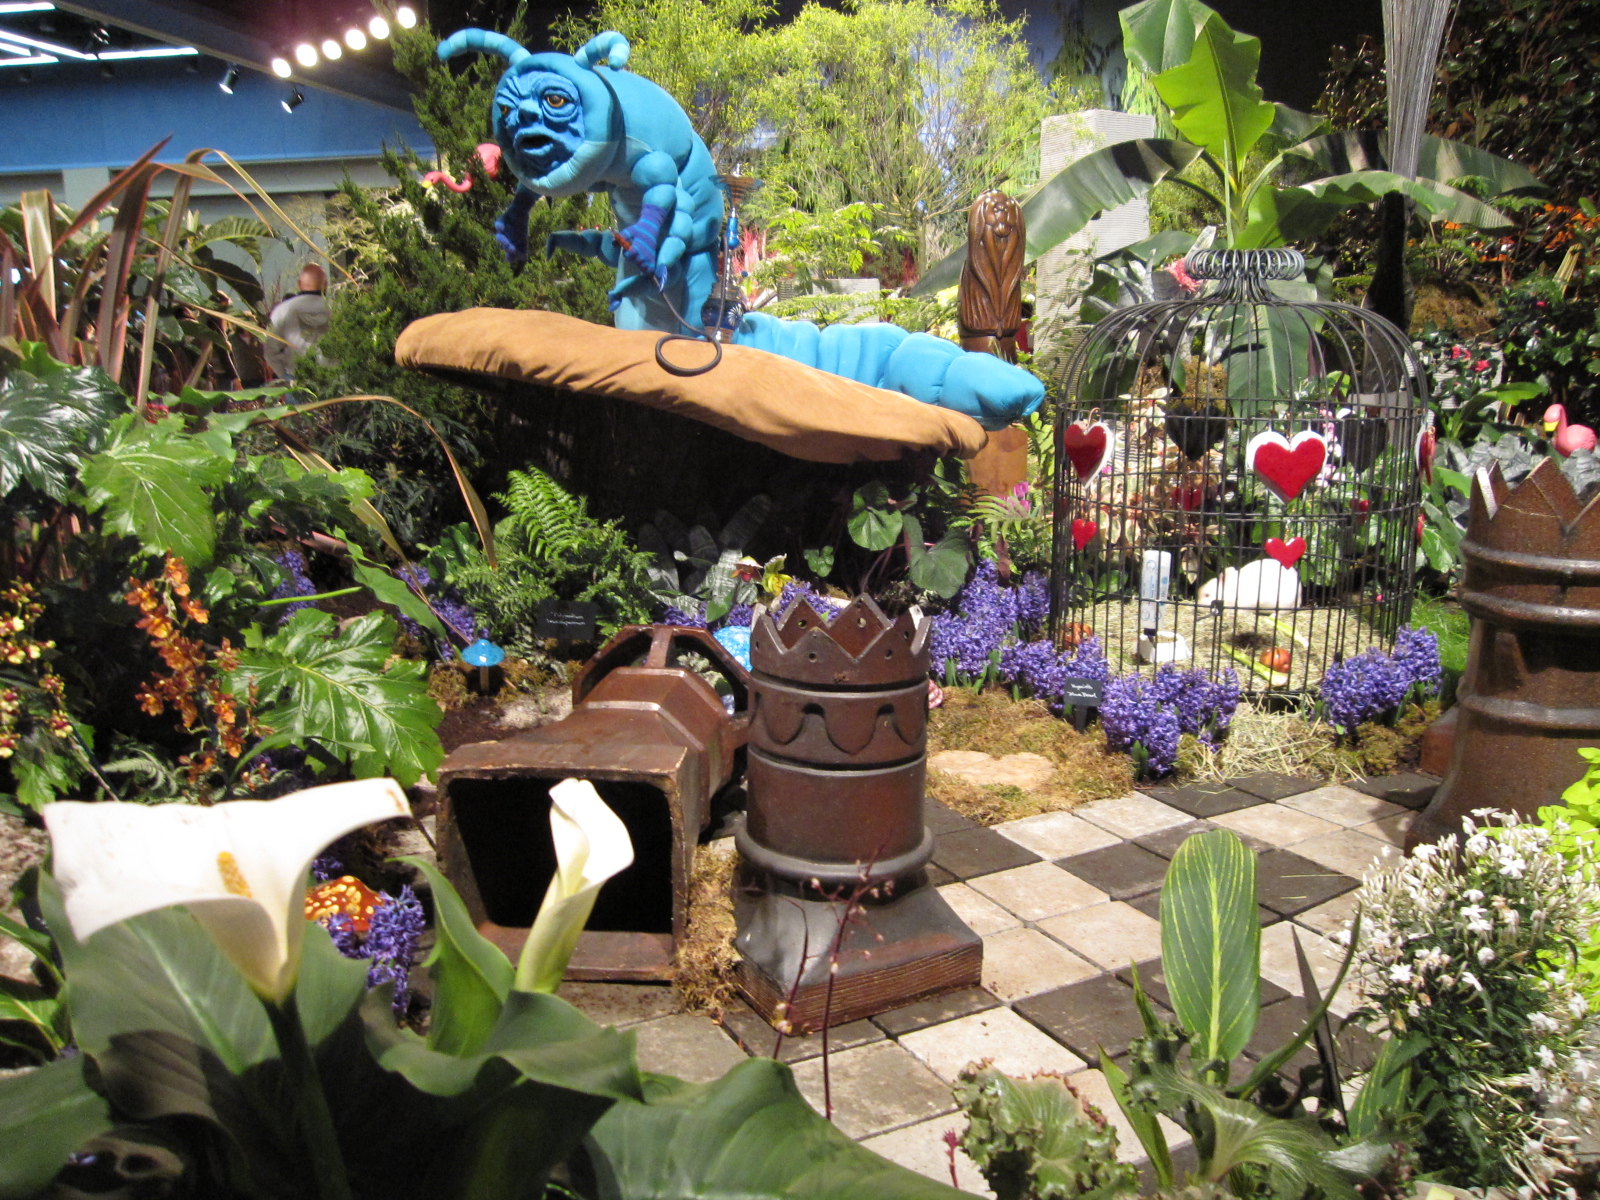 mulchmaid 2011 nwf g show the display gardens. Black Bedroom Furniture Sets. Home Design Ideas